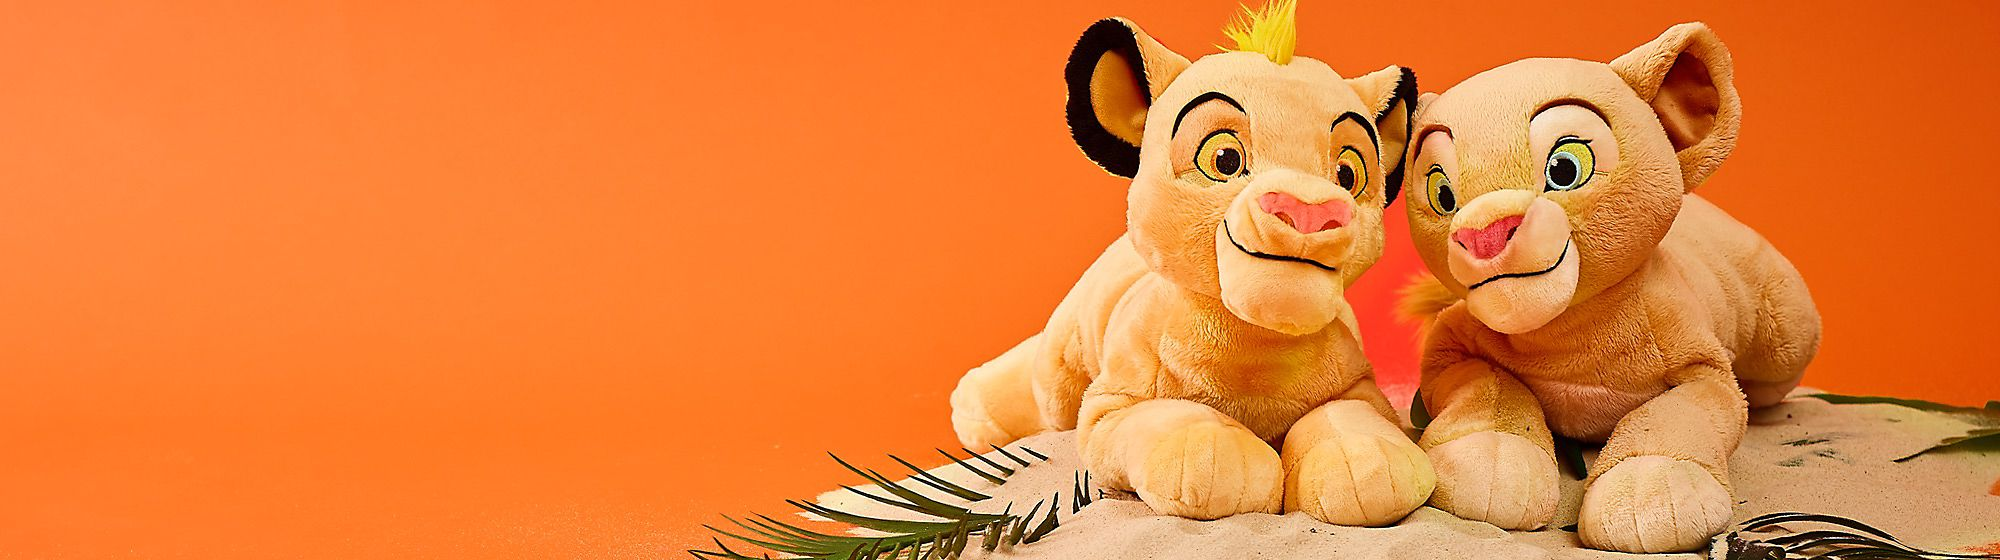 The Lion King Explore our The Lion King range including soft toys, playsets, homeware, collectibles and more SHOP NOW